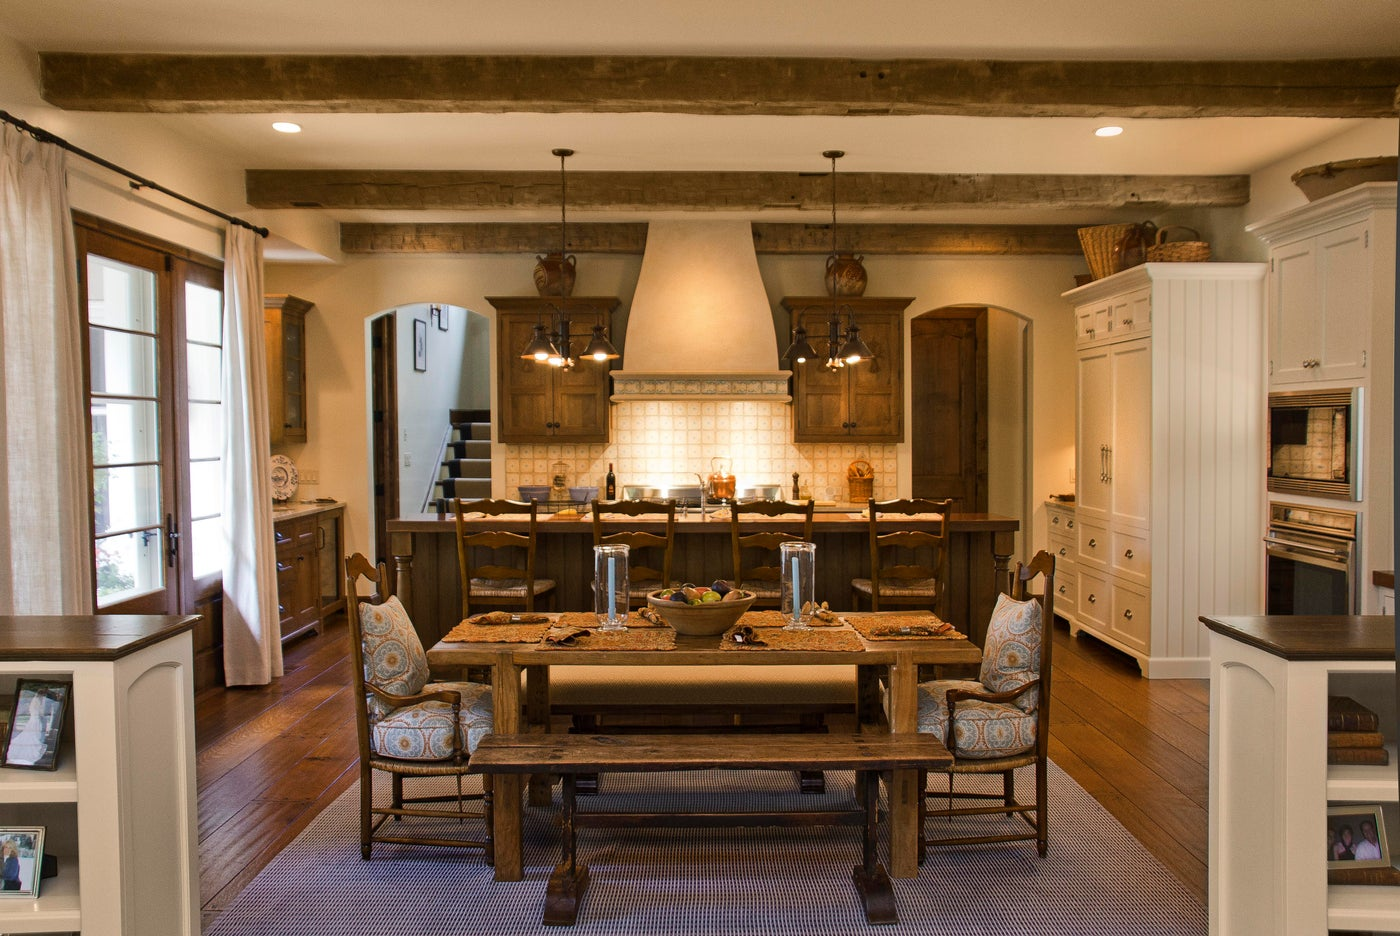 French Country Style Residence  |  Cold Spring Harbor, New York.